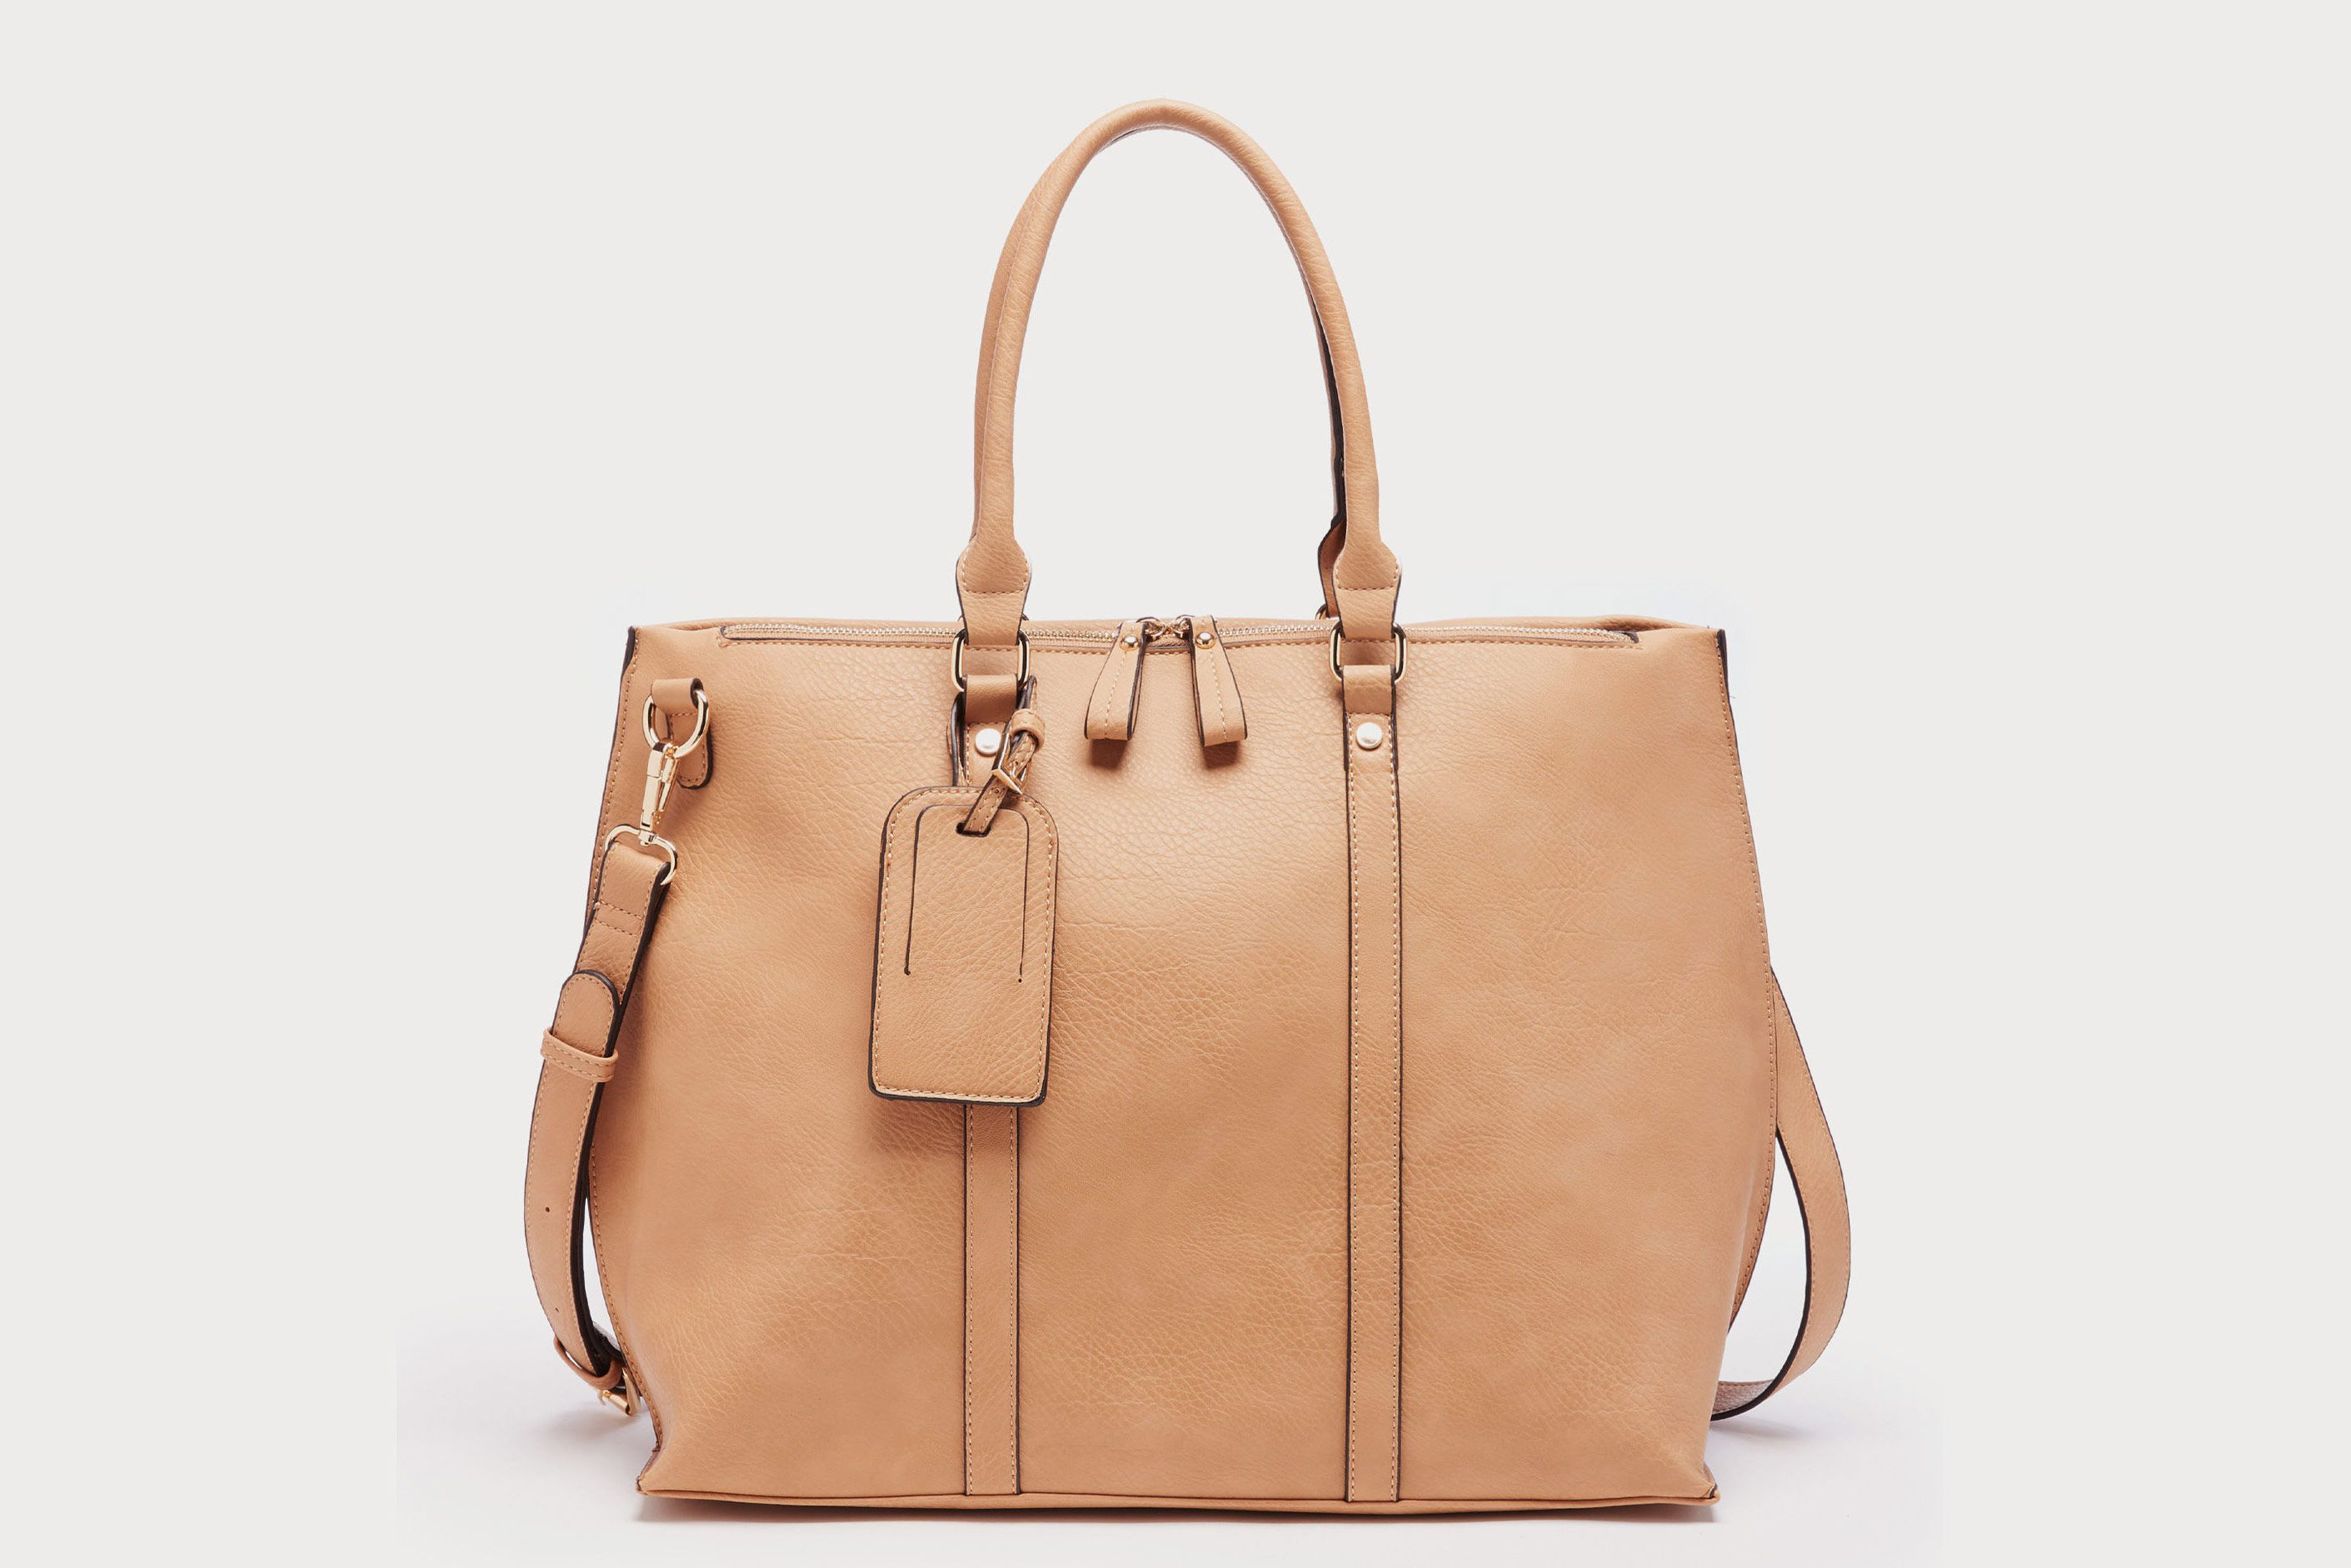 Work Tote Bag Creative Fashion Fruit Pear Line Leather Hand Totes Bag Causal Handbags Zipped Shoulder Organizer For Lady Girls Womens Womans Shoulder Bag